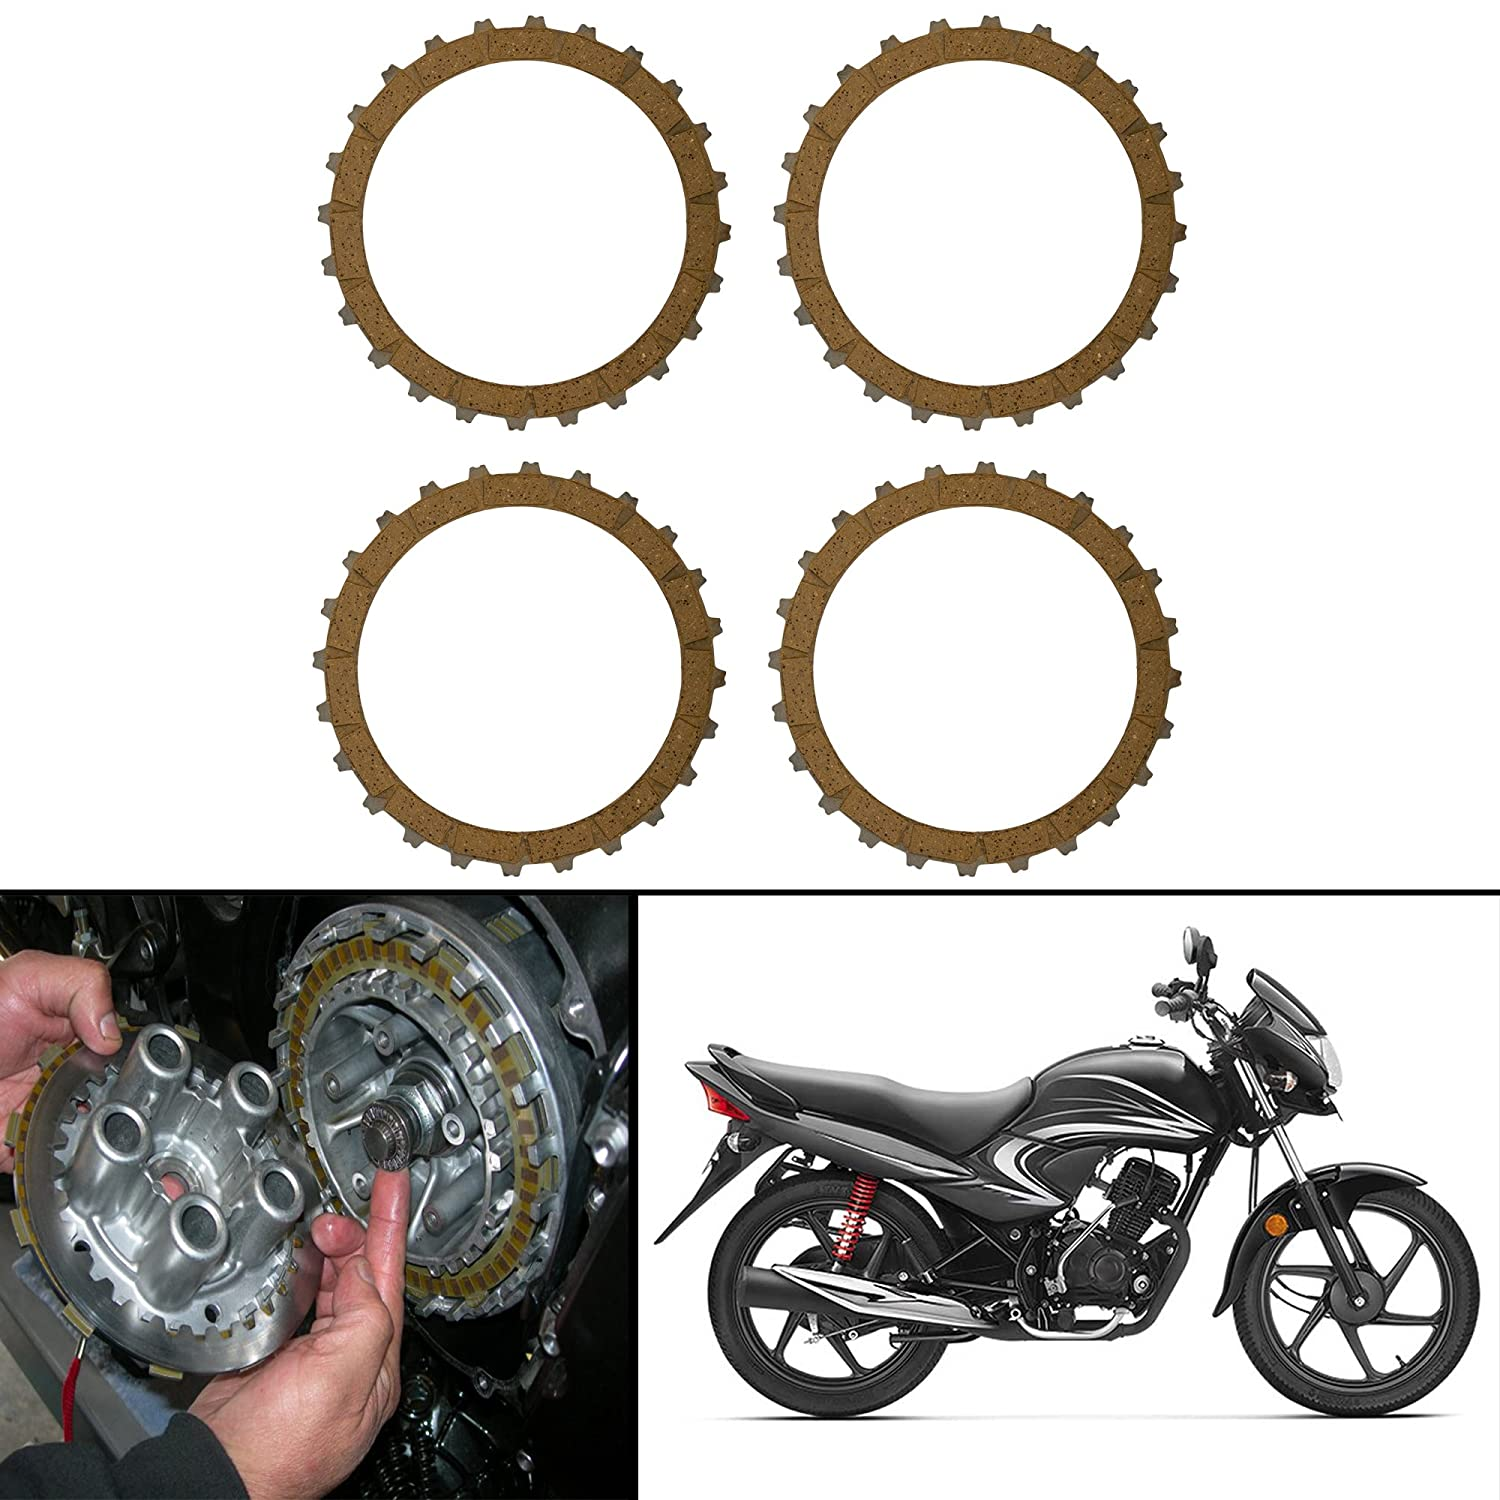 Autofy Highly Durable Steel Clutch Plates Clutch Disc For Honda Dream Yuga New Set Of 4 Amazon In Car Motorbike